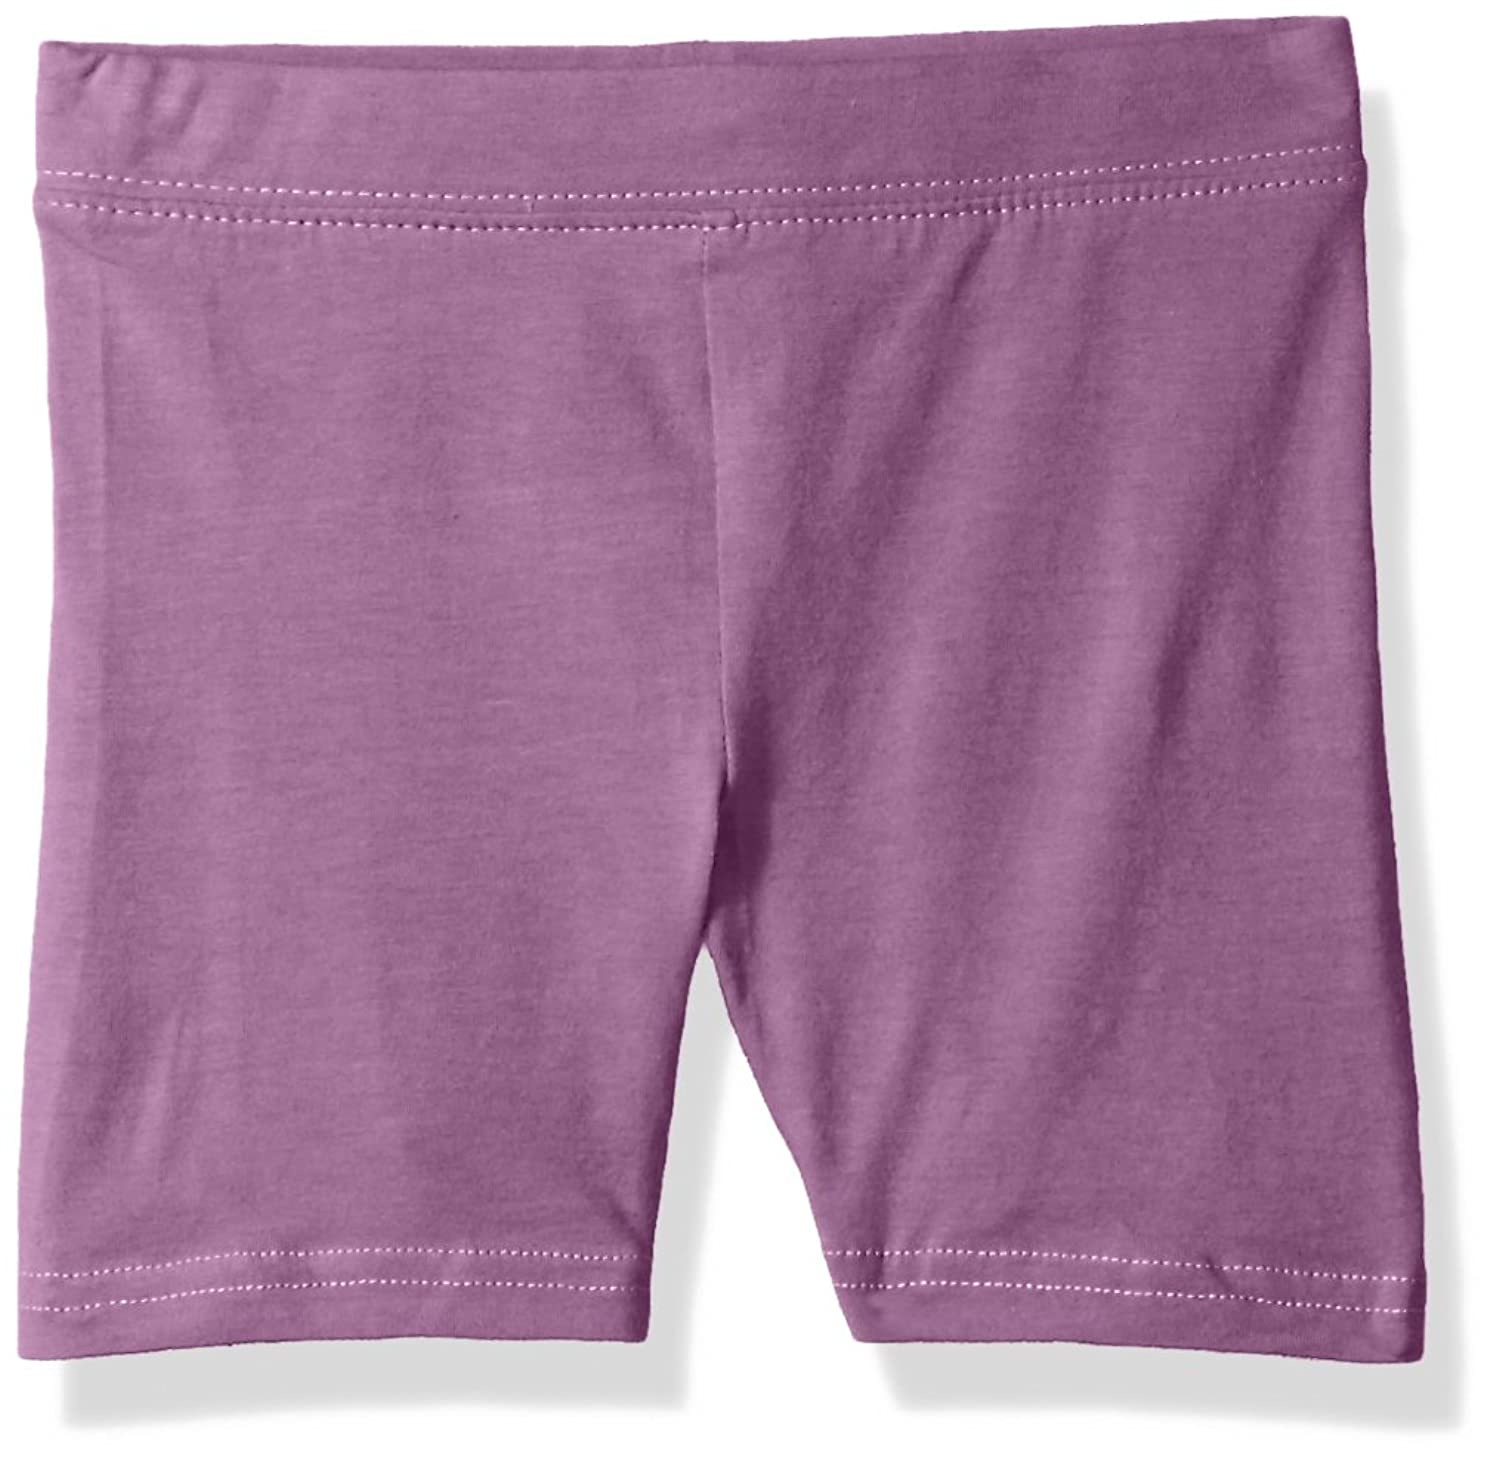 3180e312051c7 Clementine Apparel Big Toddler Girls Soft Stretch Athletic Pant Shorts